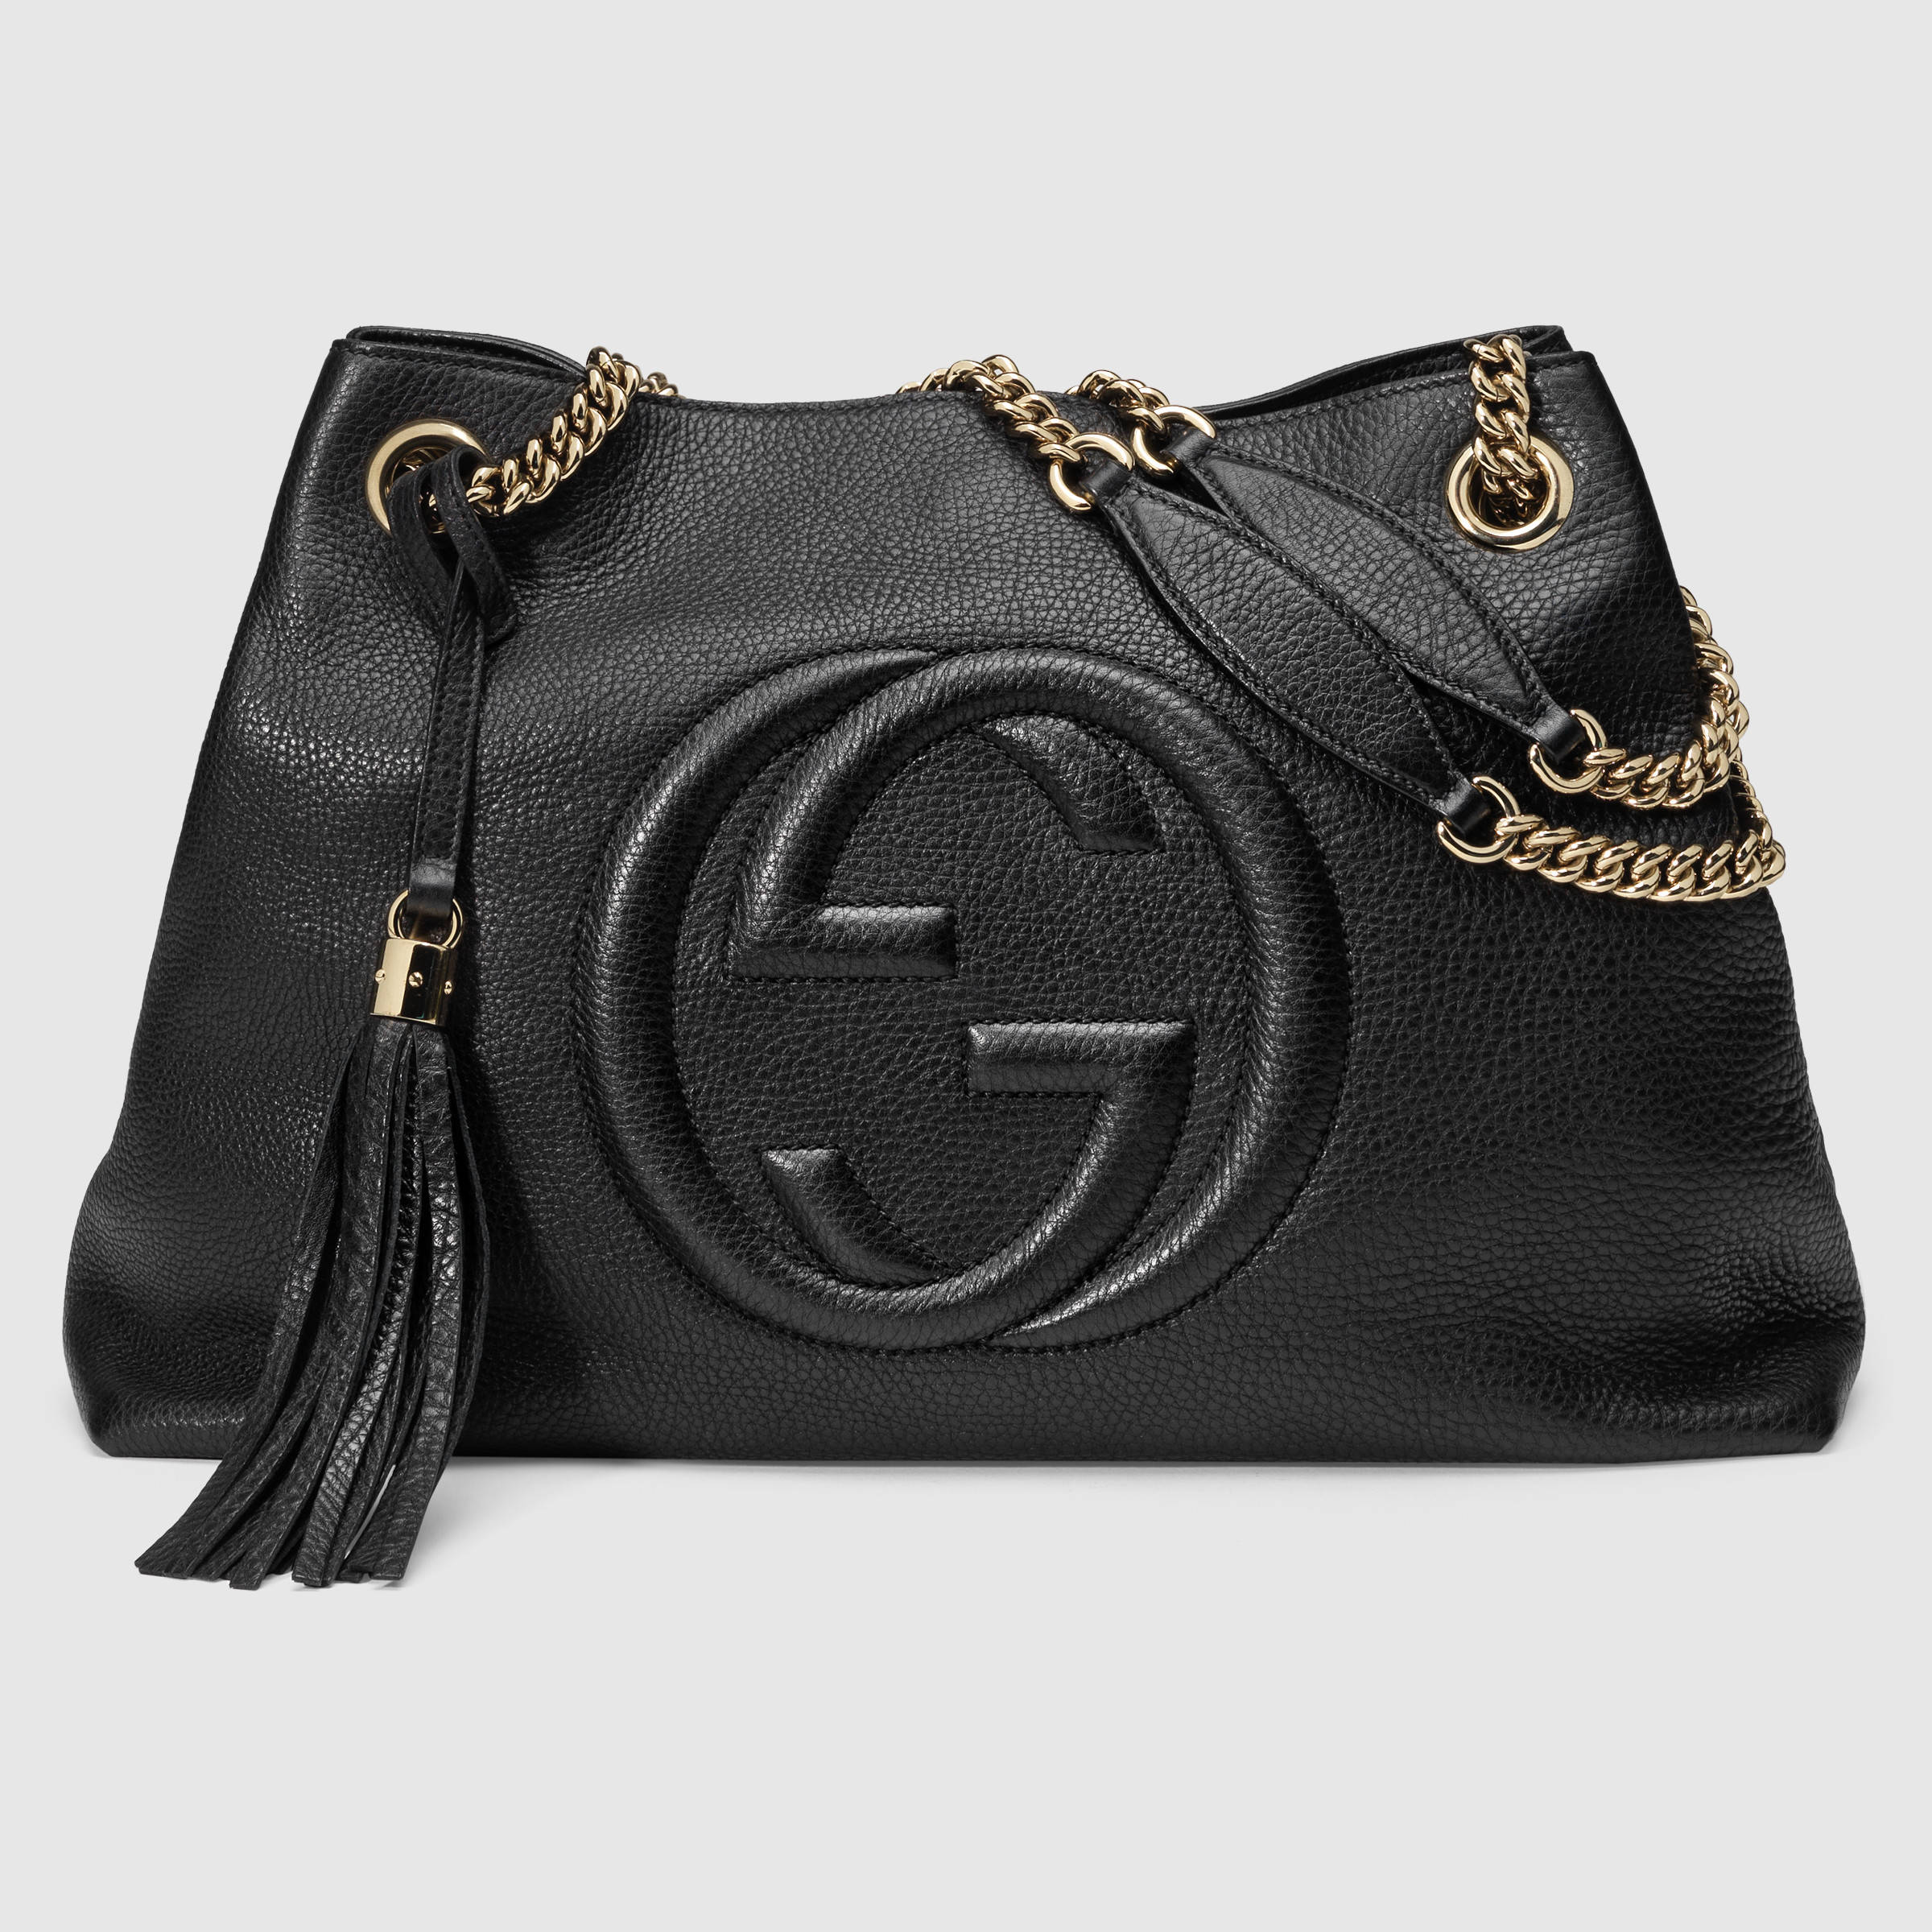 77677c3287af7a Gucci Soho Black Leather Tassel Chain bag, Women's Fashion, Bags & Wallets  on Carousell